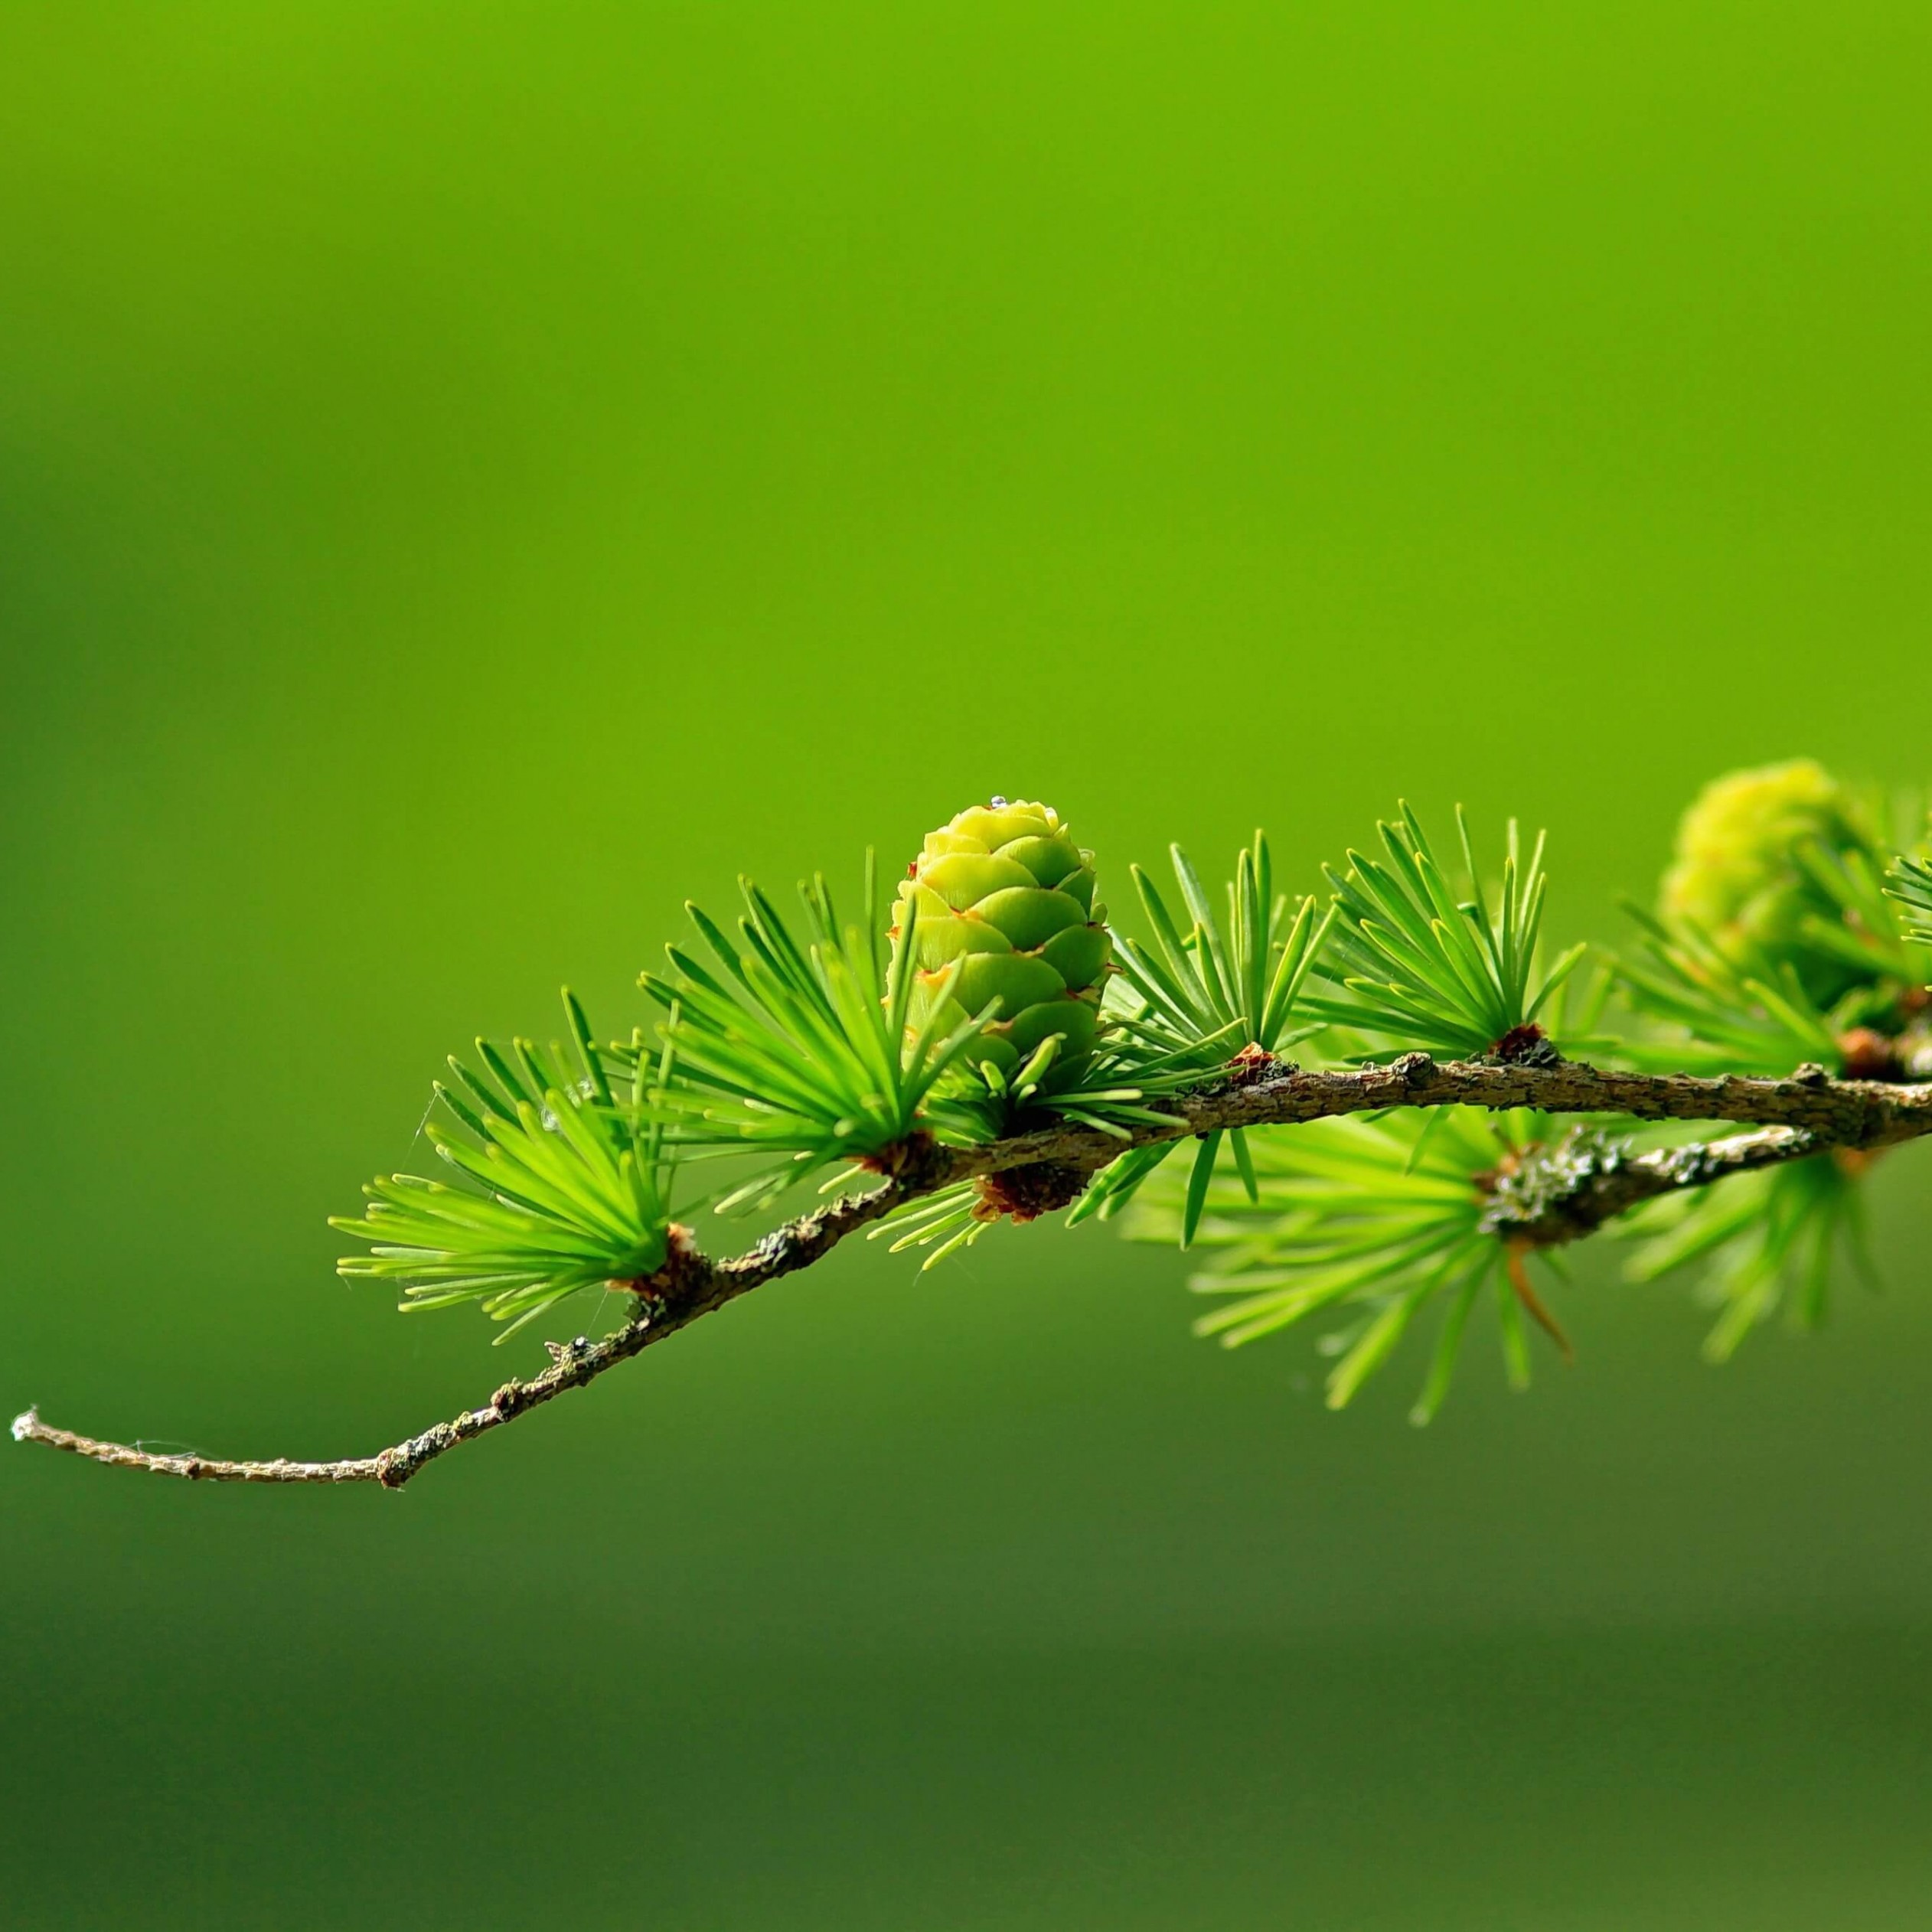 Branch of Pine Tree Wallpaper for Apple iPad 4